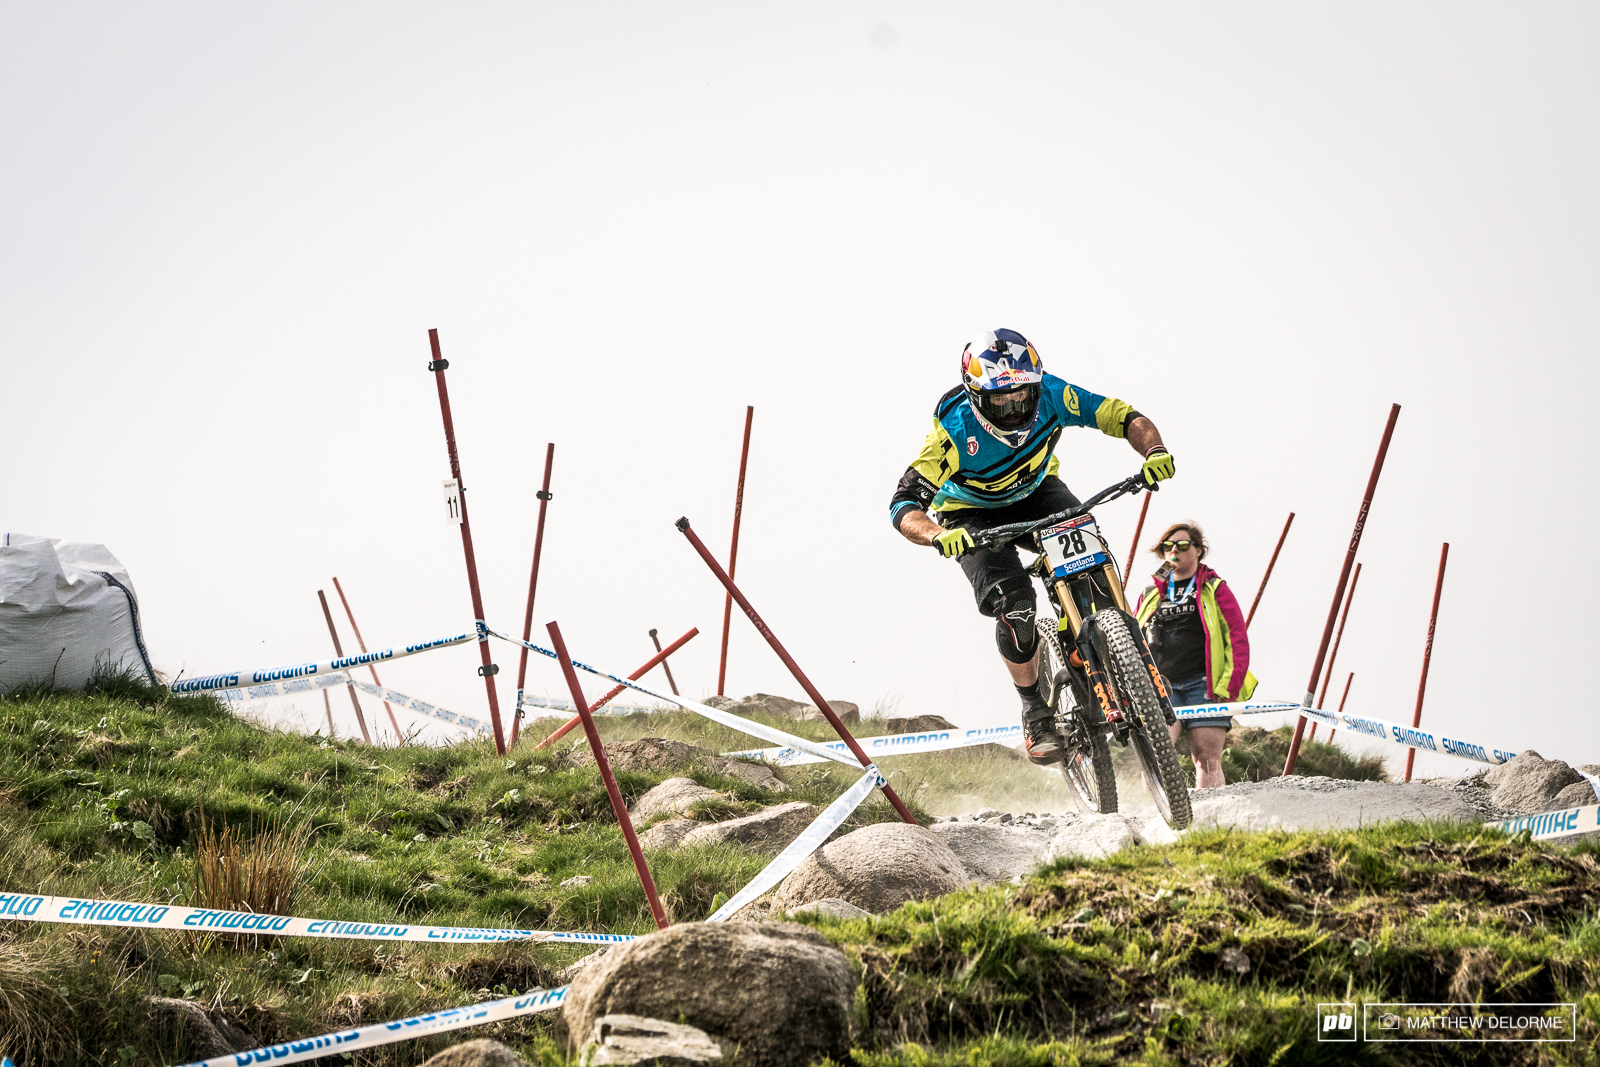 Brook MacDonald has been looking like his old self out there. The bulldog will be gunning for another Fort William podium tomorrow.